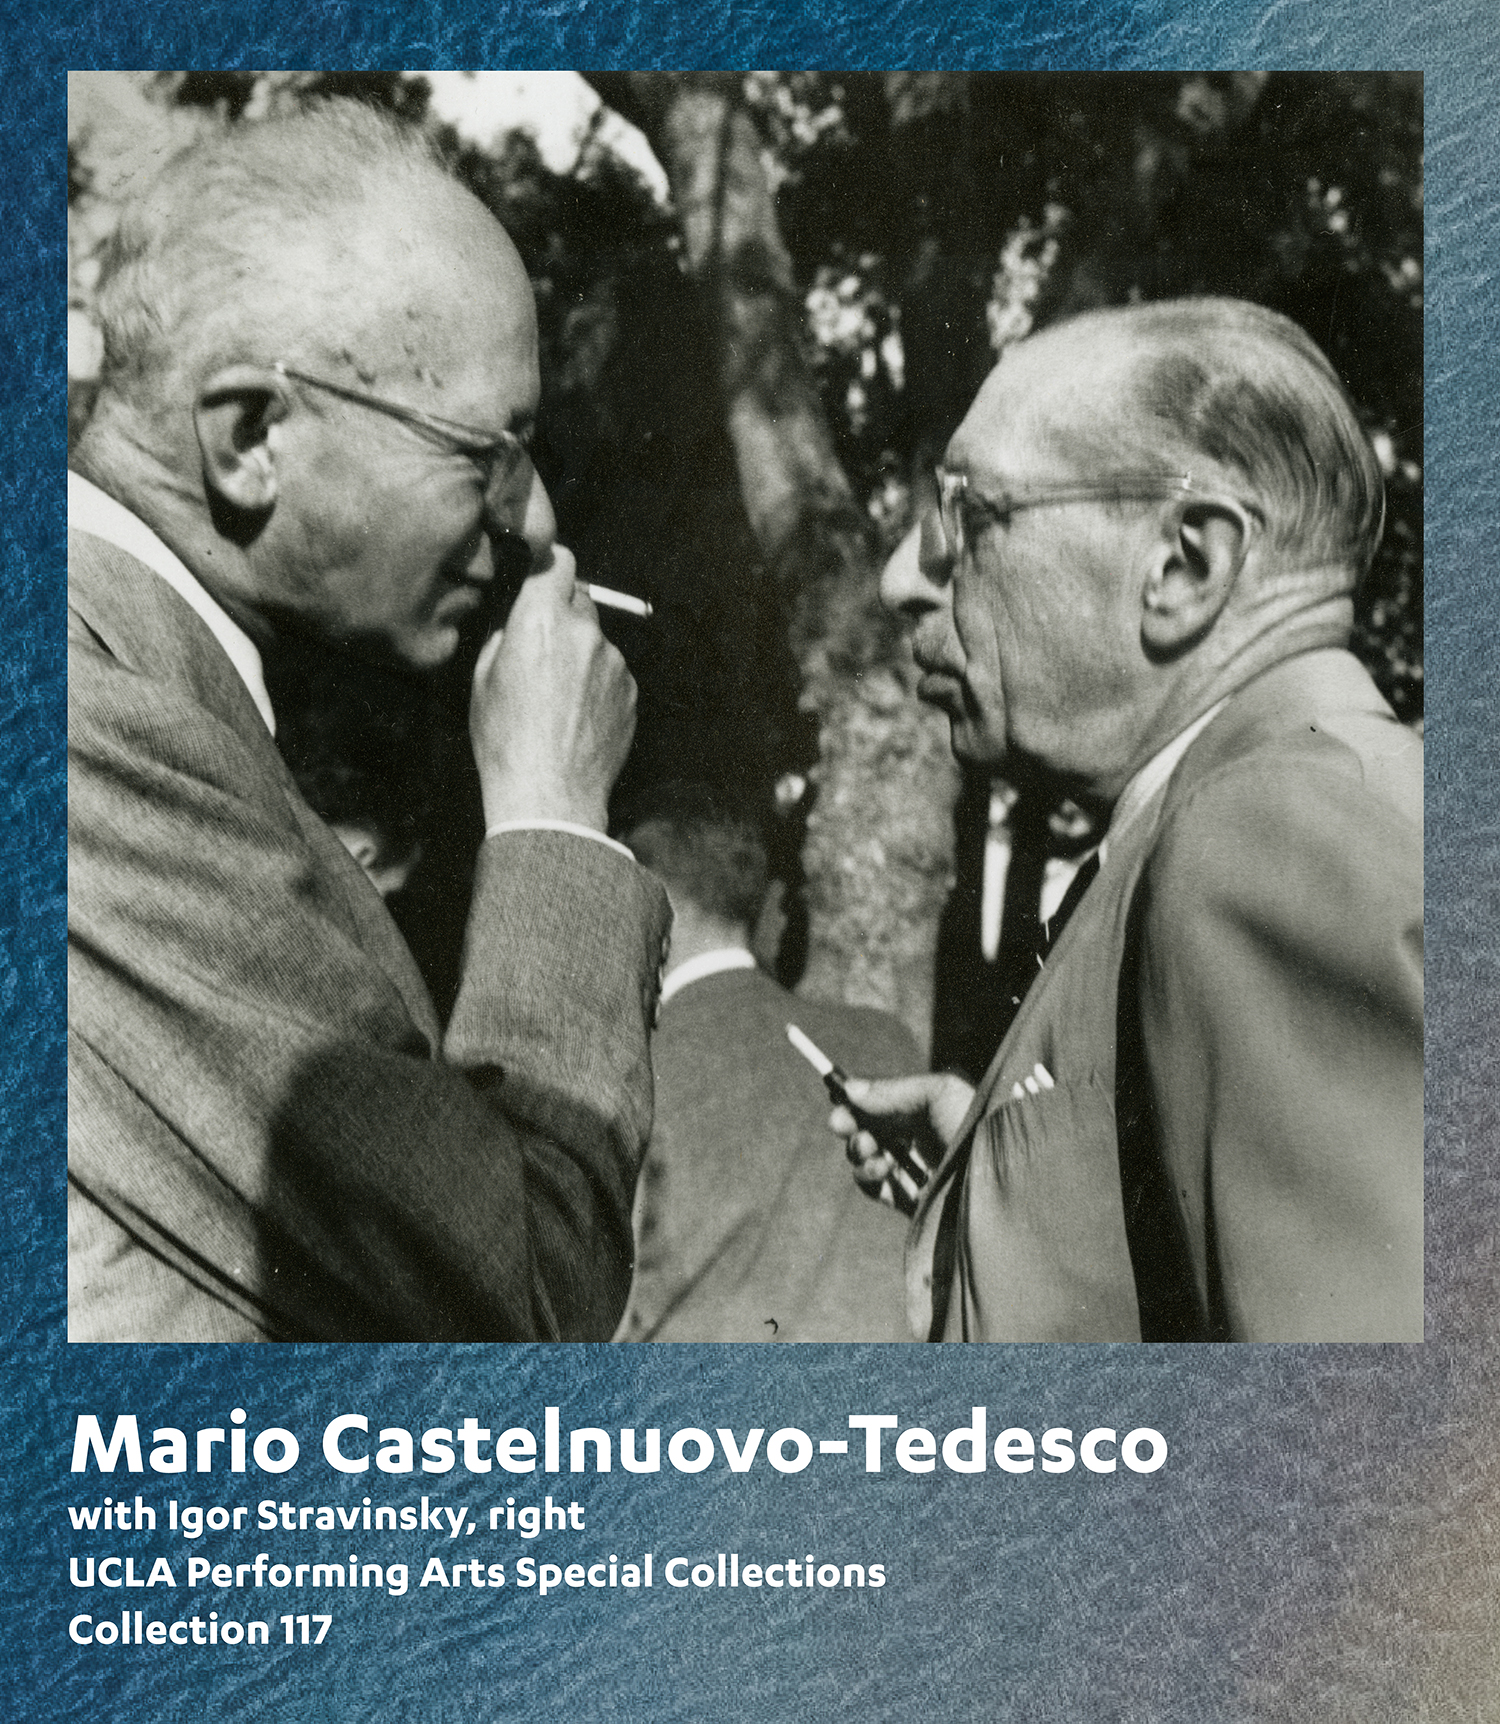 Mario Castelnuovo-Tedesco with Igor Stravinsky, right, UCLA Performing Arts Special Collections, Collection 117